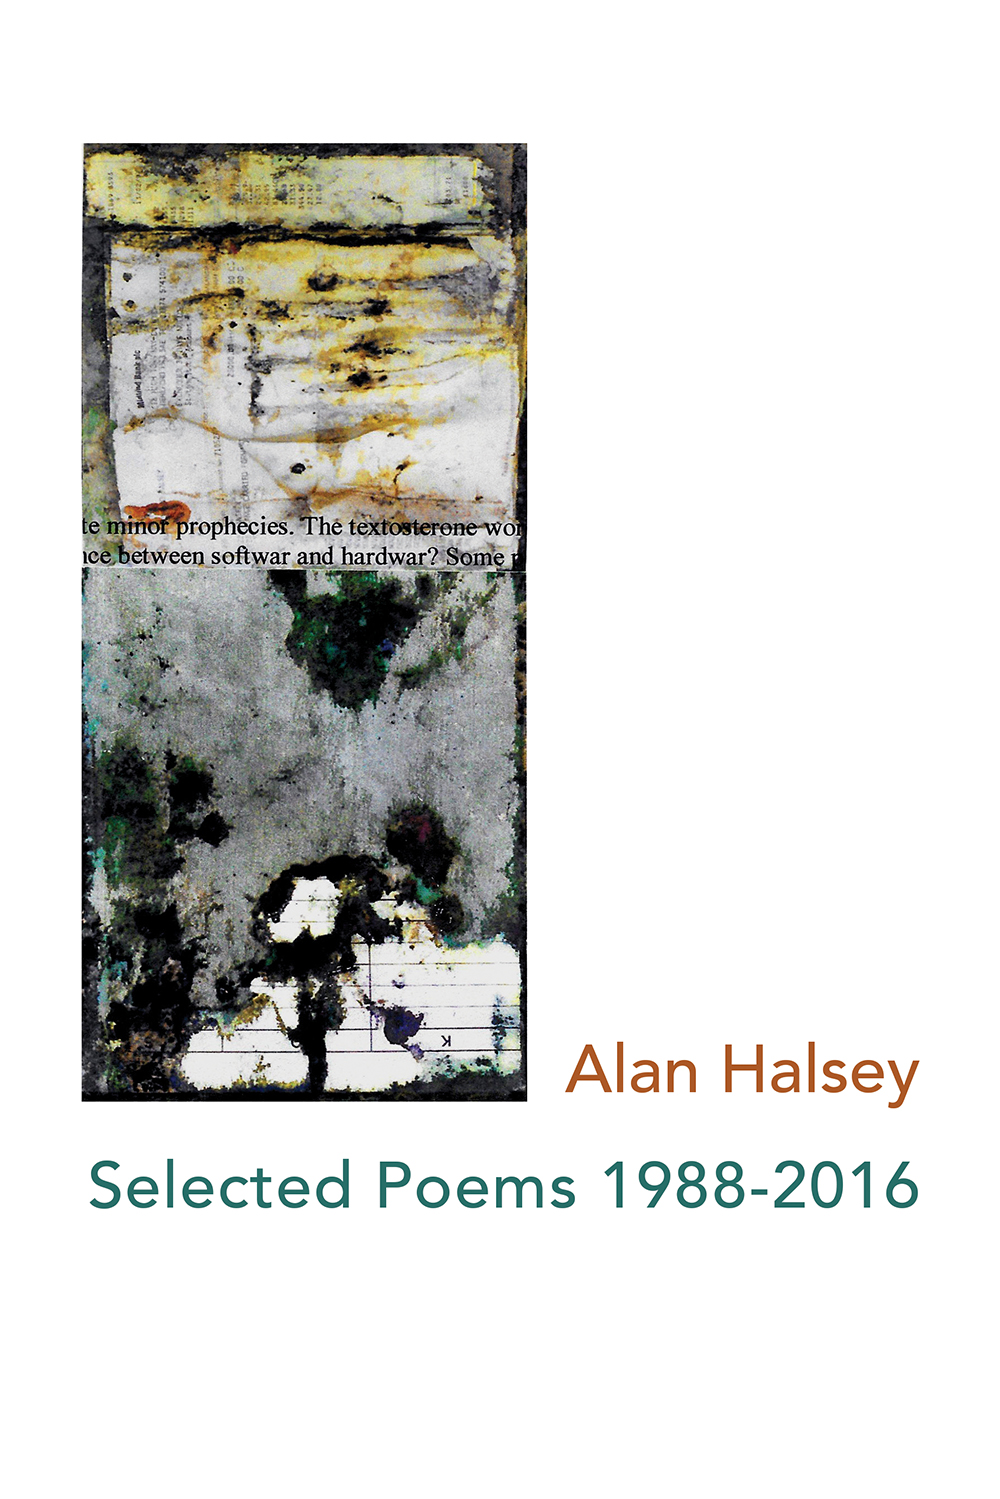 Selected Poems 1988-2016